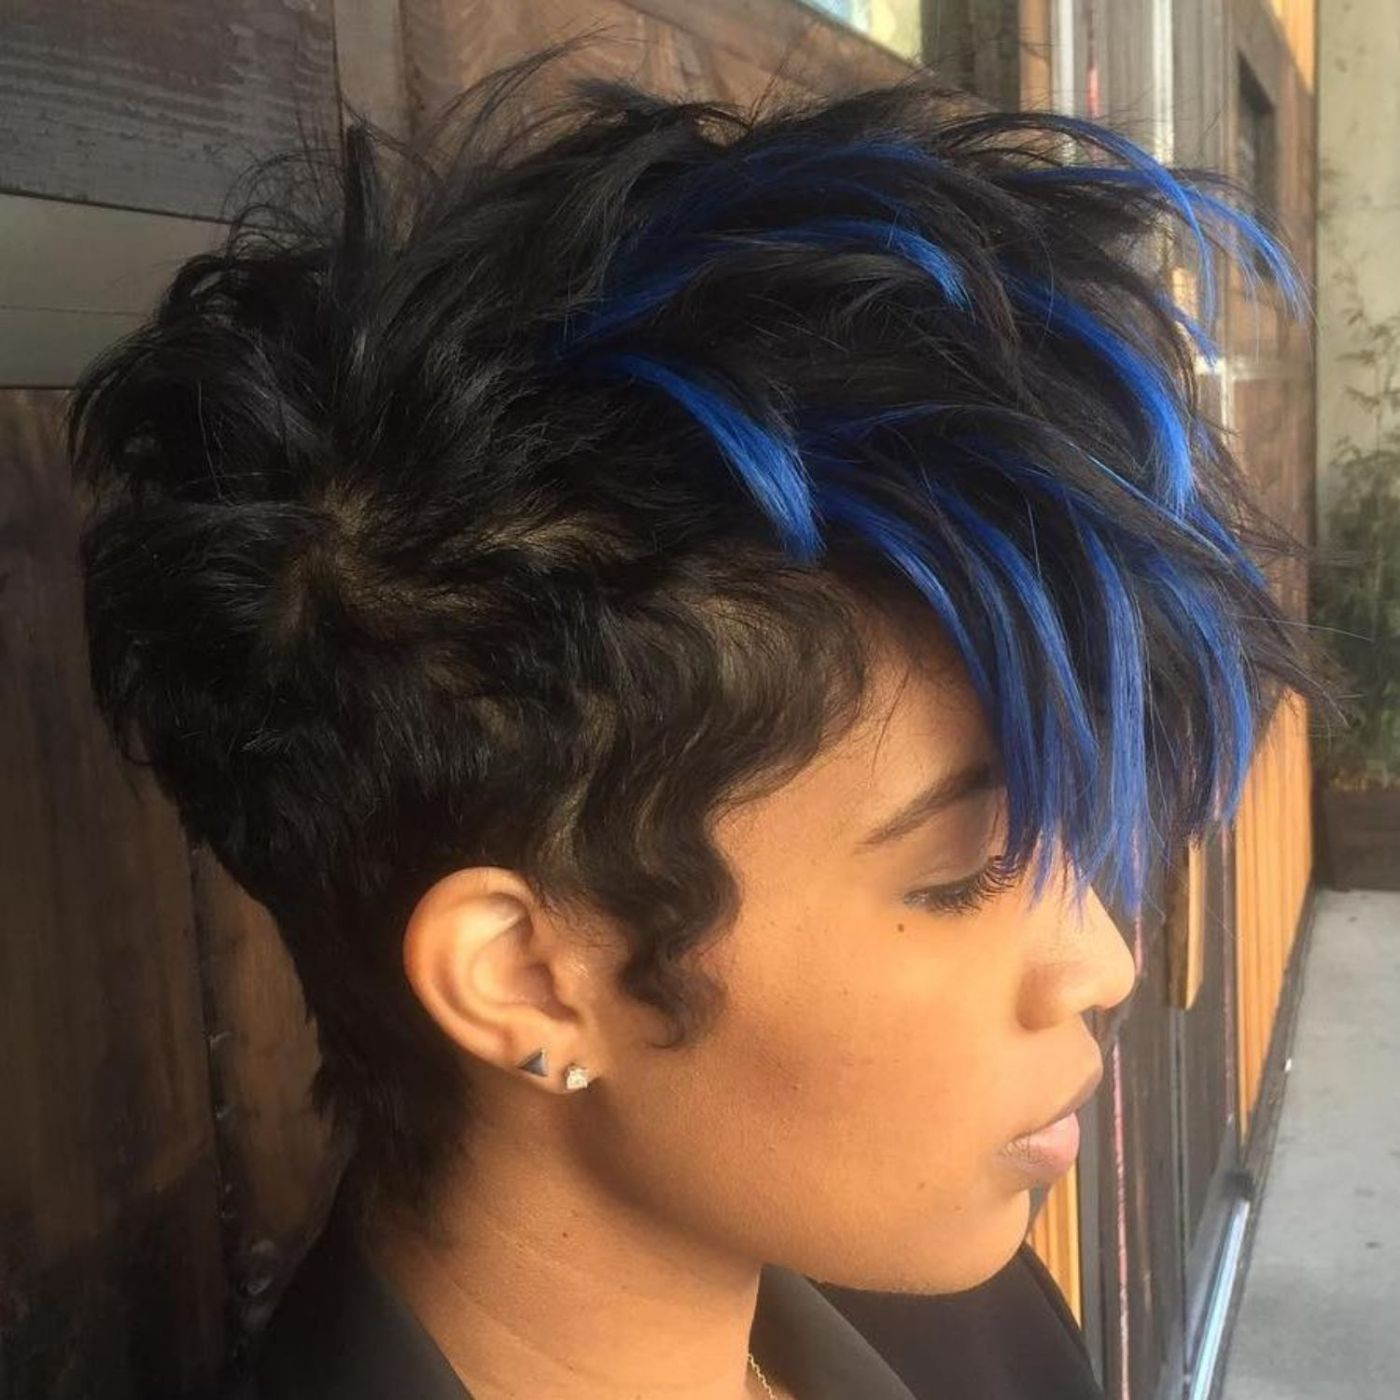 Short black hairstyle with blue highlights